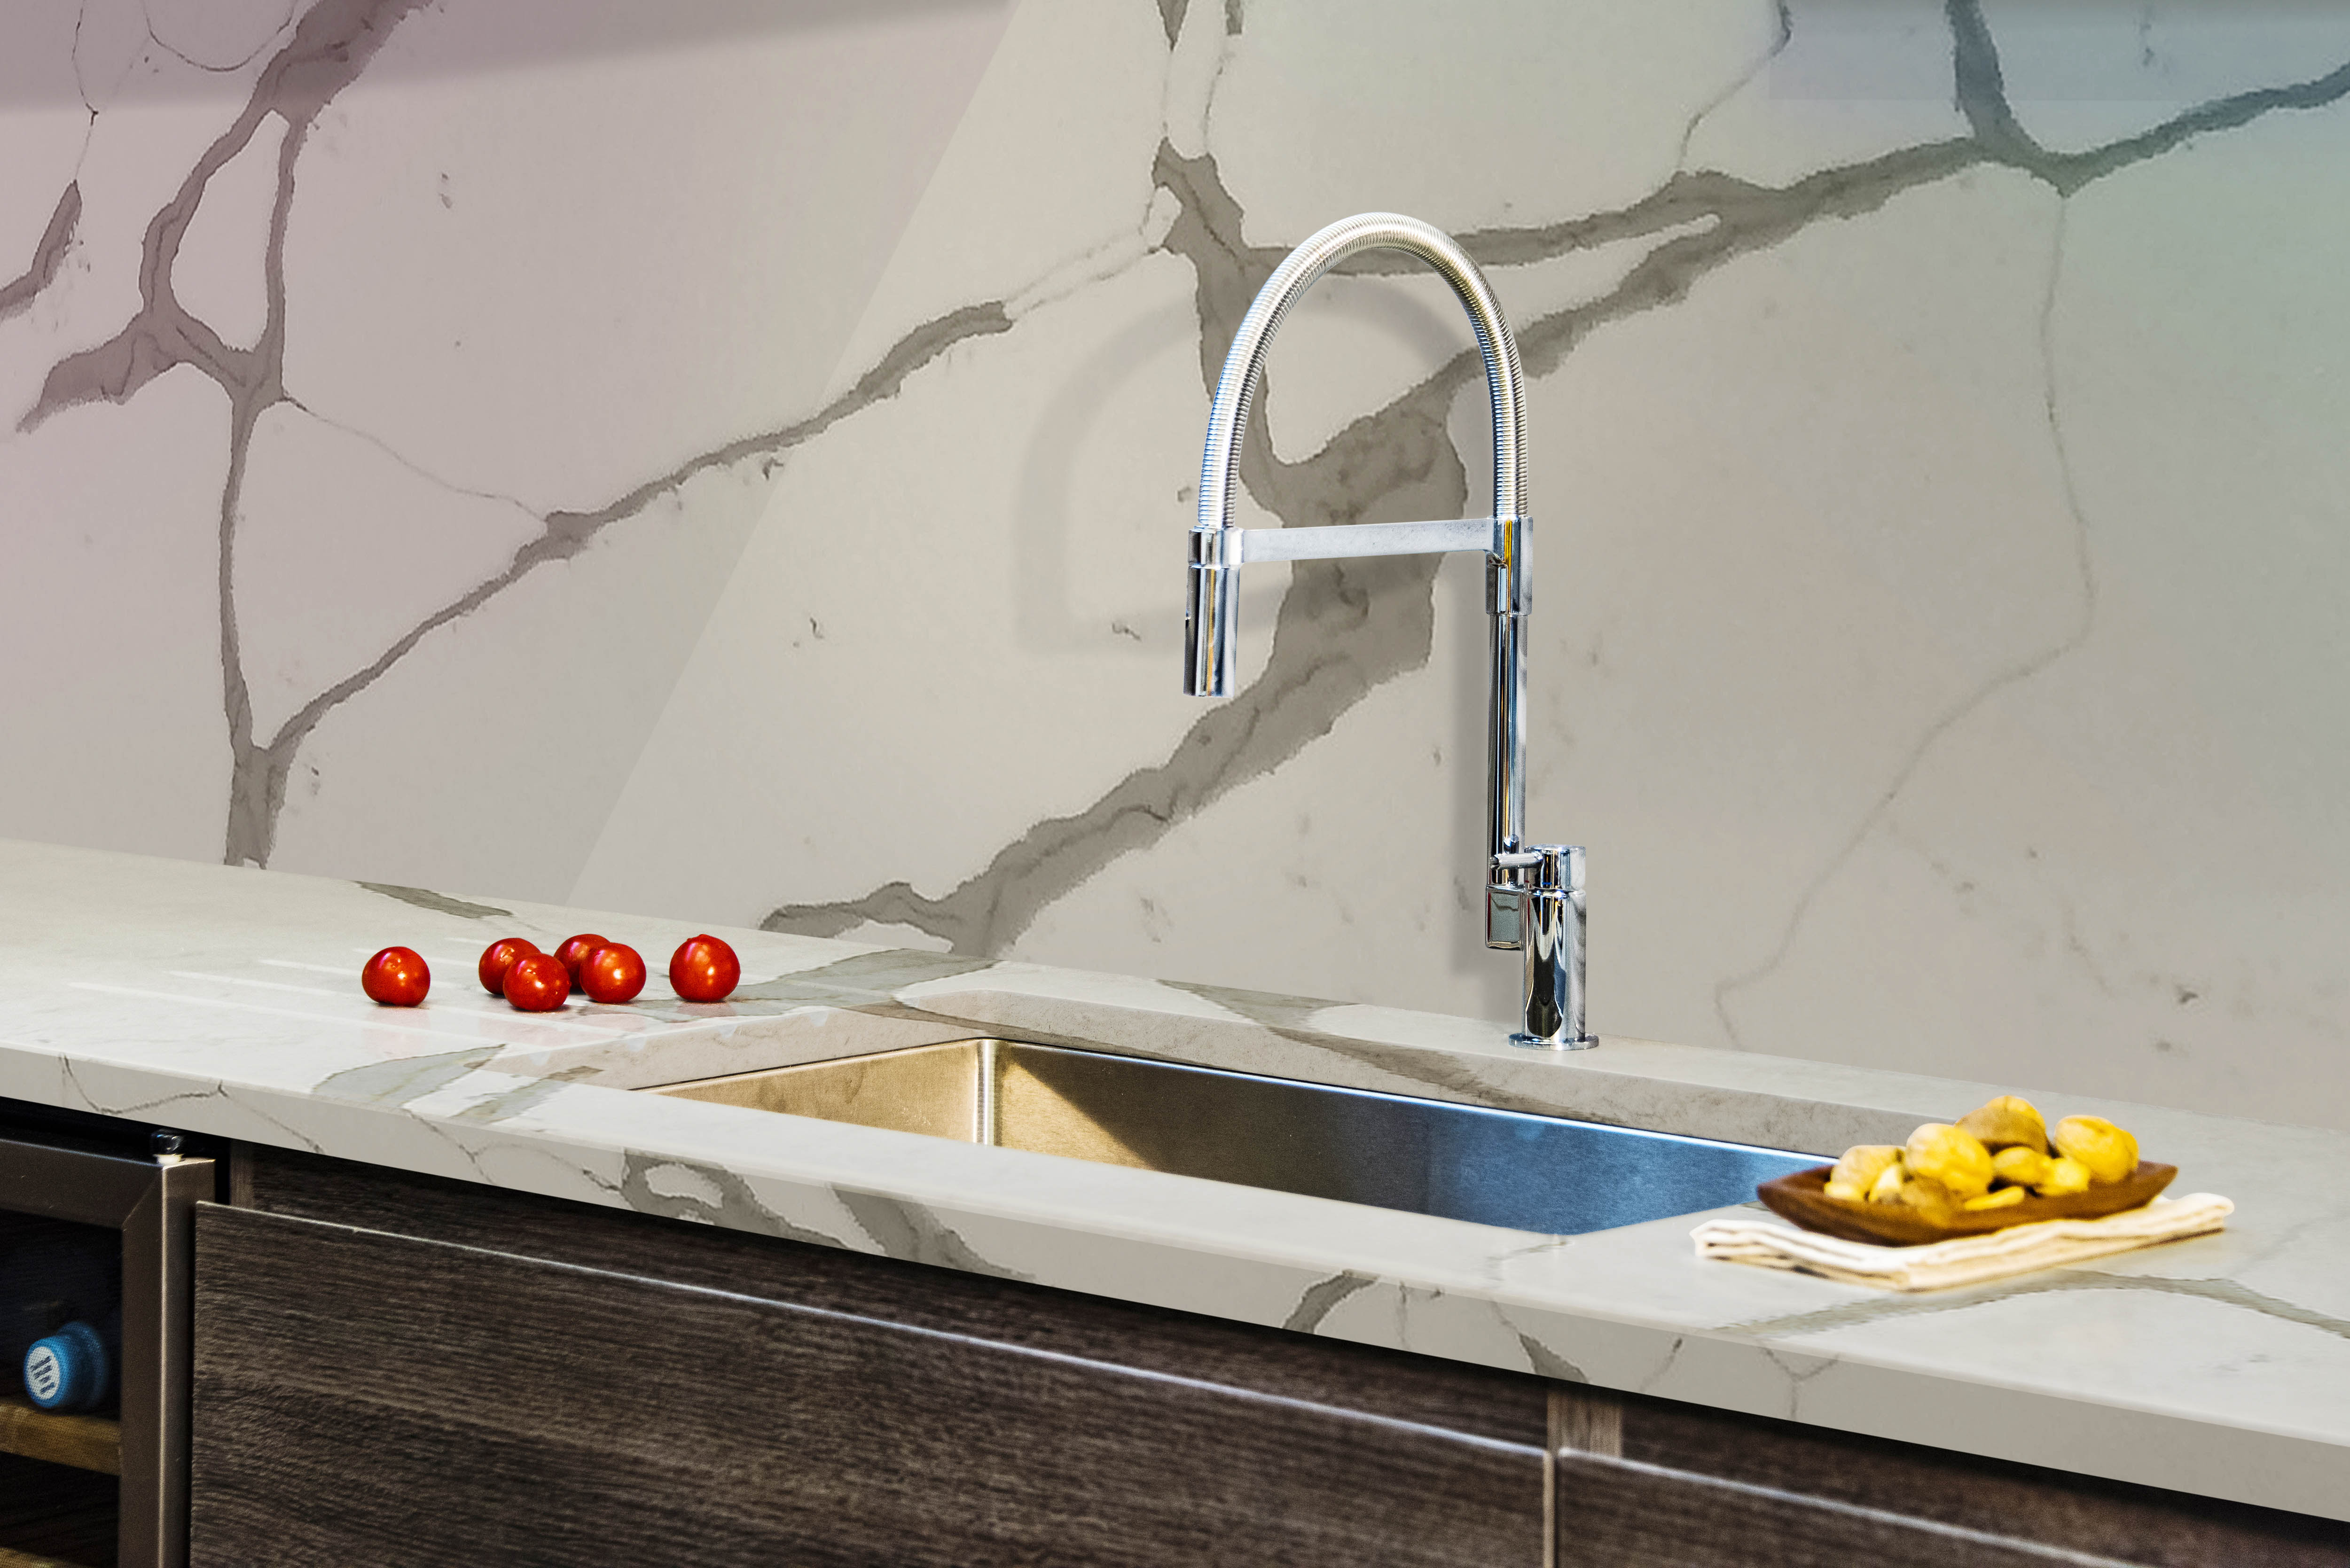 Undermount Stainless Steel Single Bowl Kitchen Sink with Granite